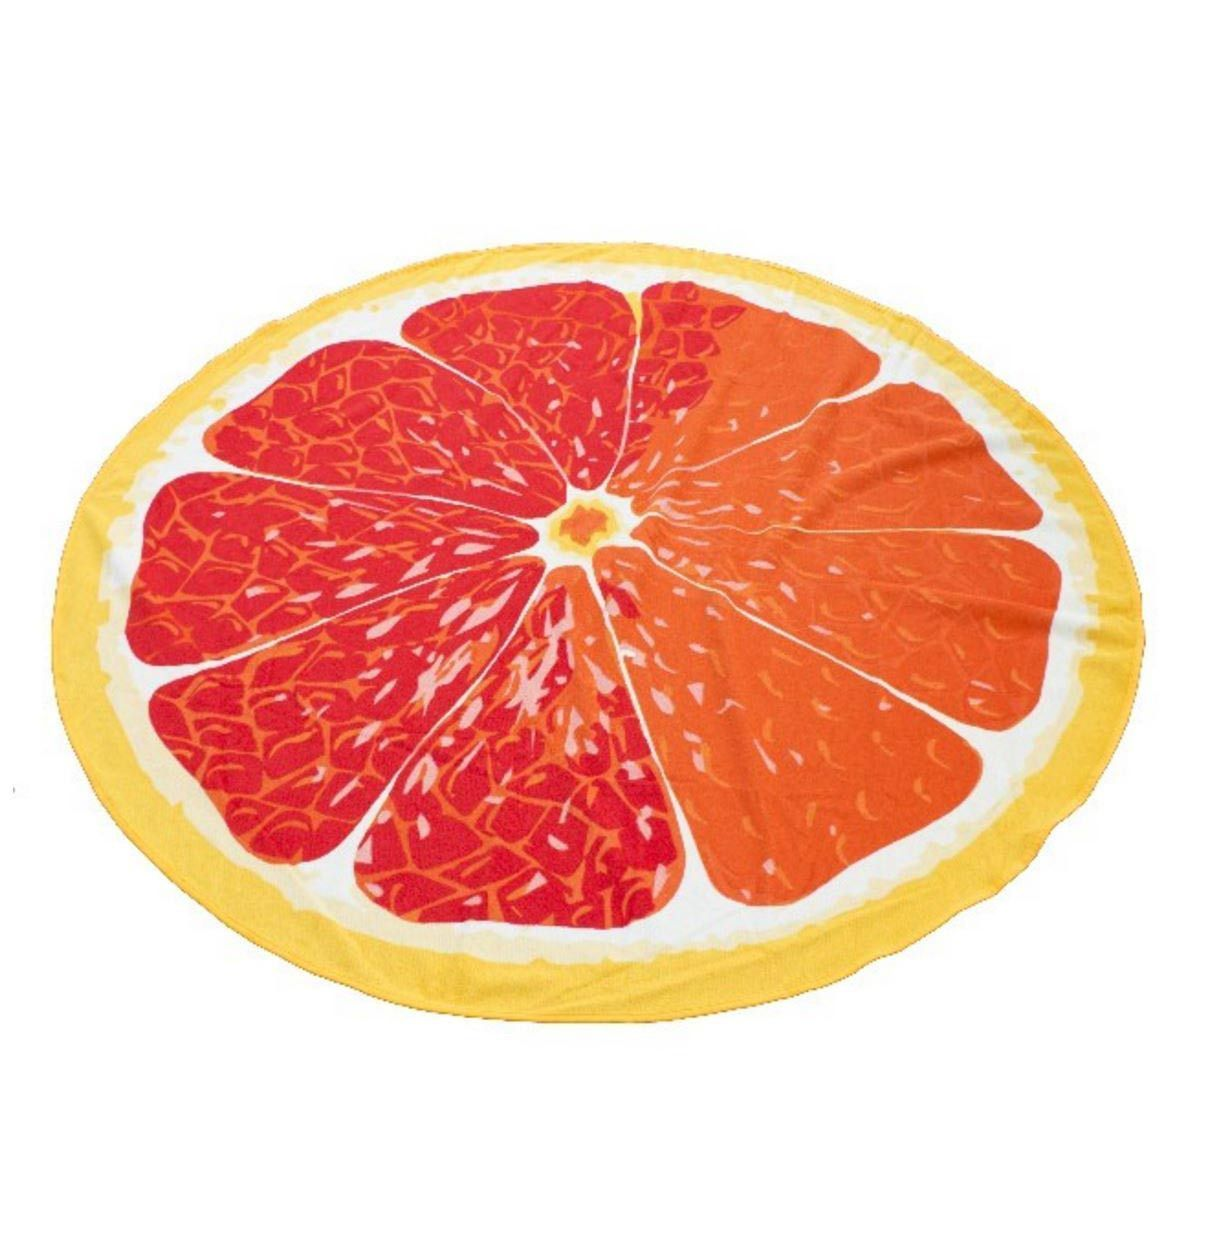 Grapefruit Round Beach Towel Beach Towel Round Beach Towels Towel